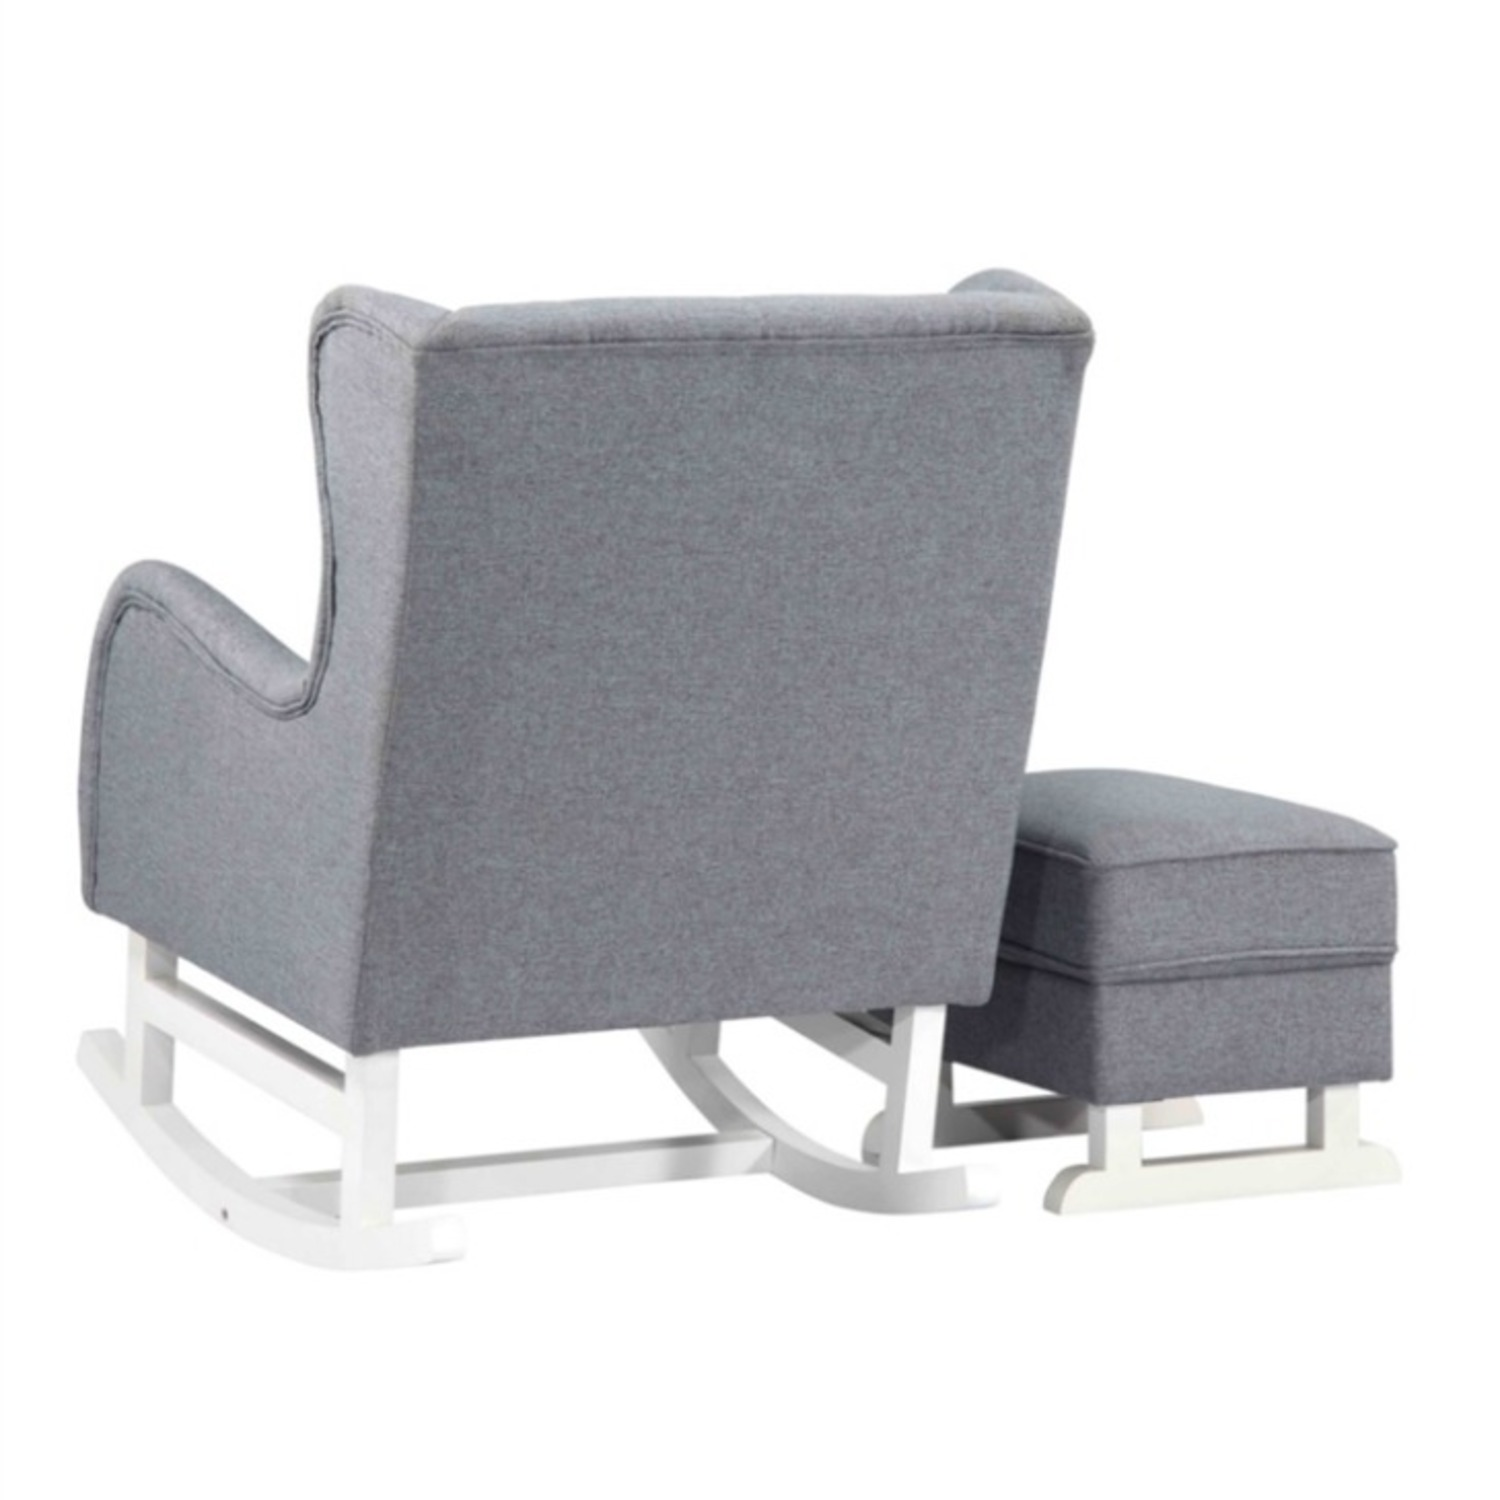 Baby Lounge Chair & Ottoman In Gray Fabric - image-3